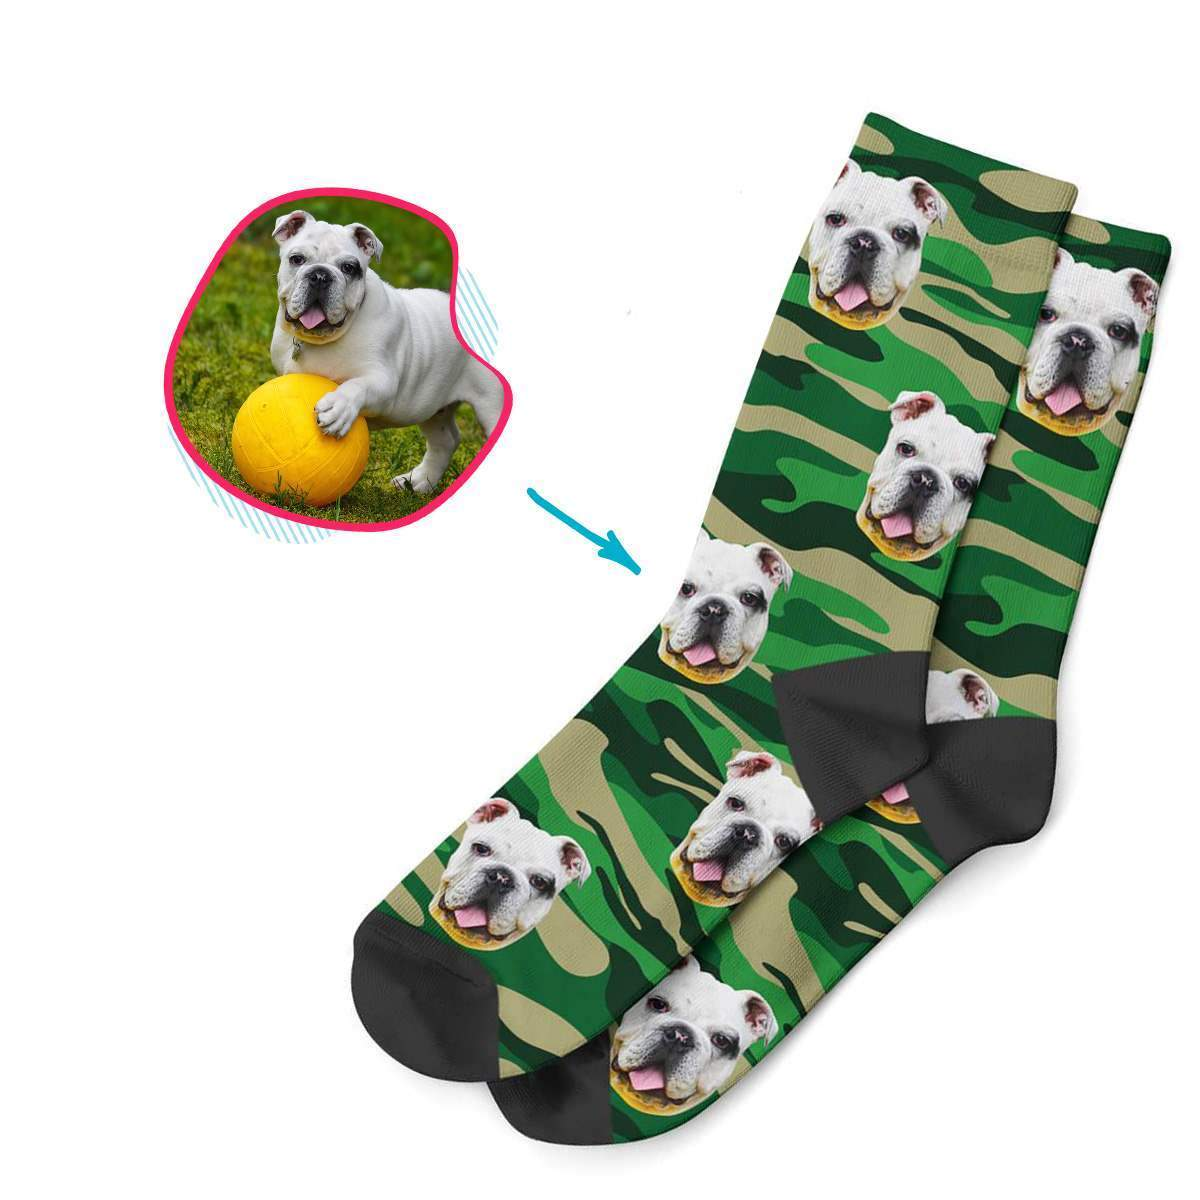 military Military socks personalized with photo of face printed on them